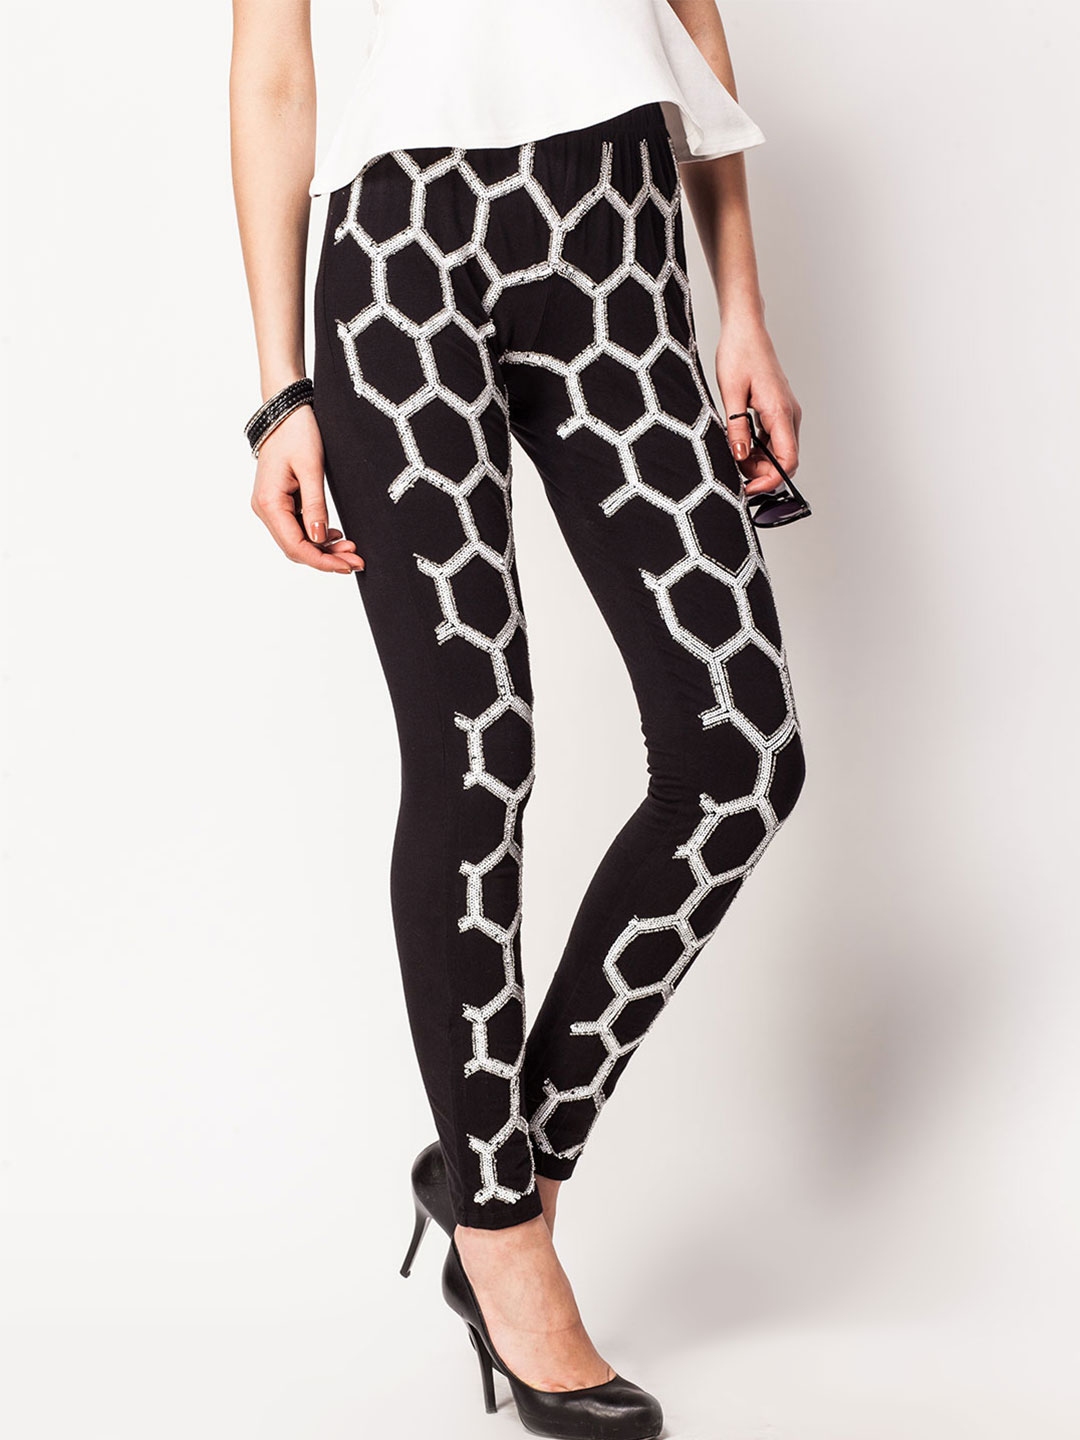 KOOVS Black/White Hexagon Sequined Beaded Legging 1